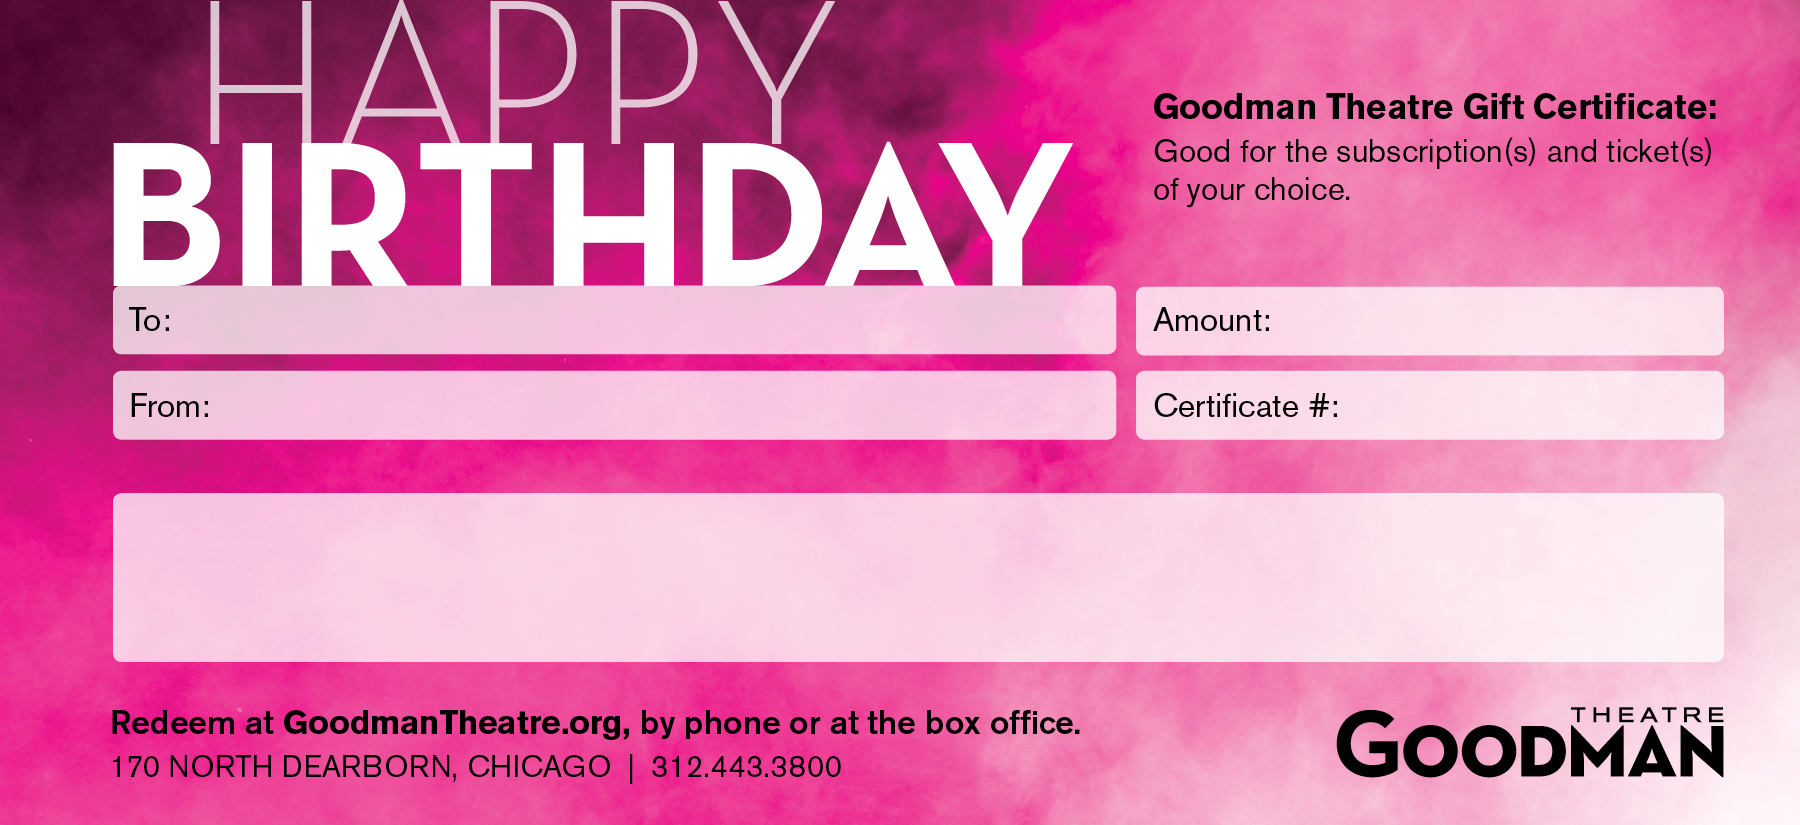 Gift certificates goodman theatre for Happy birthday gift certificate template